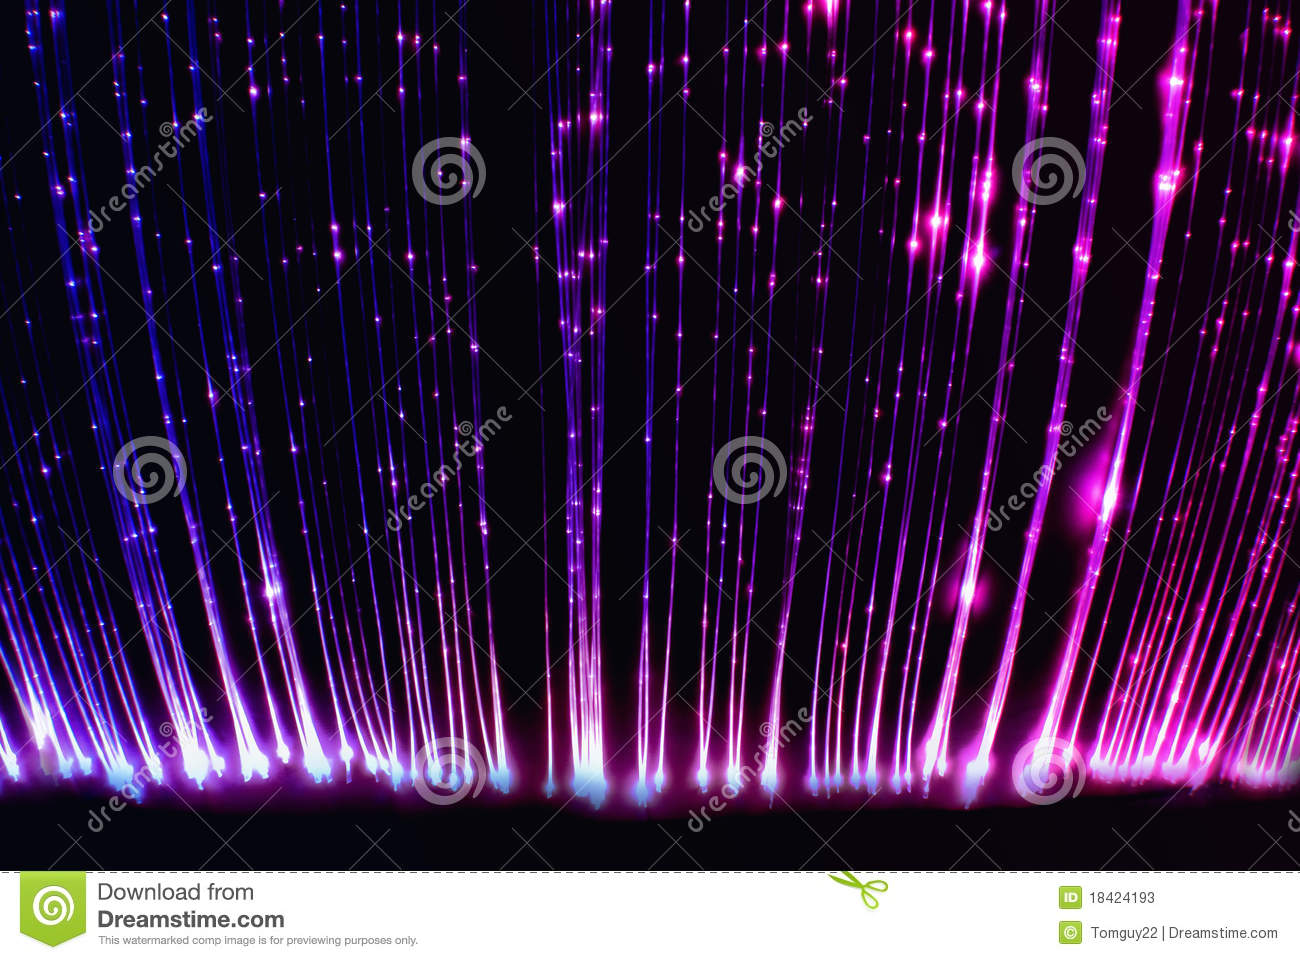 fiber optic light cables in the light sensory room stock image